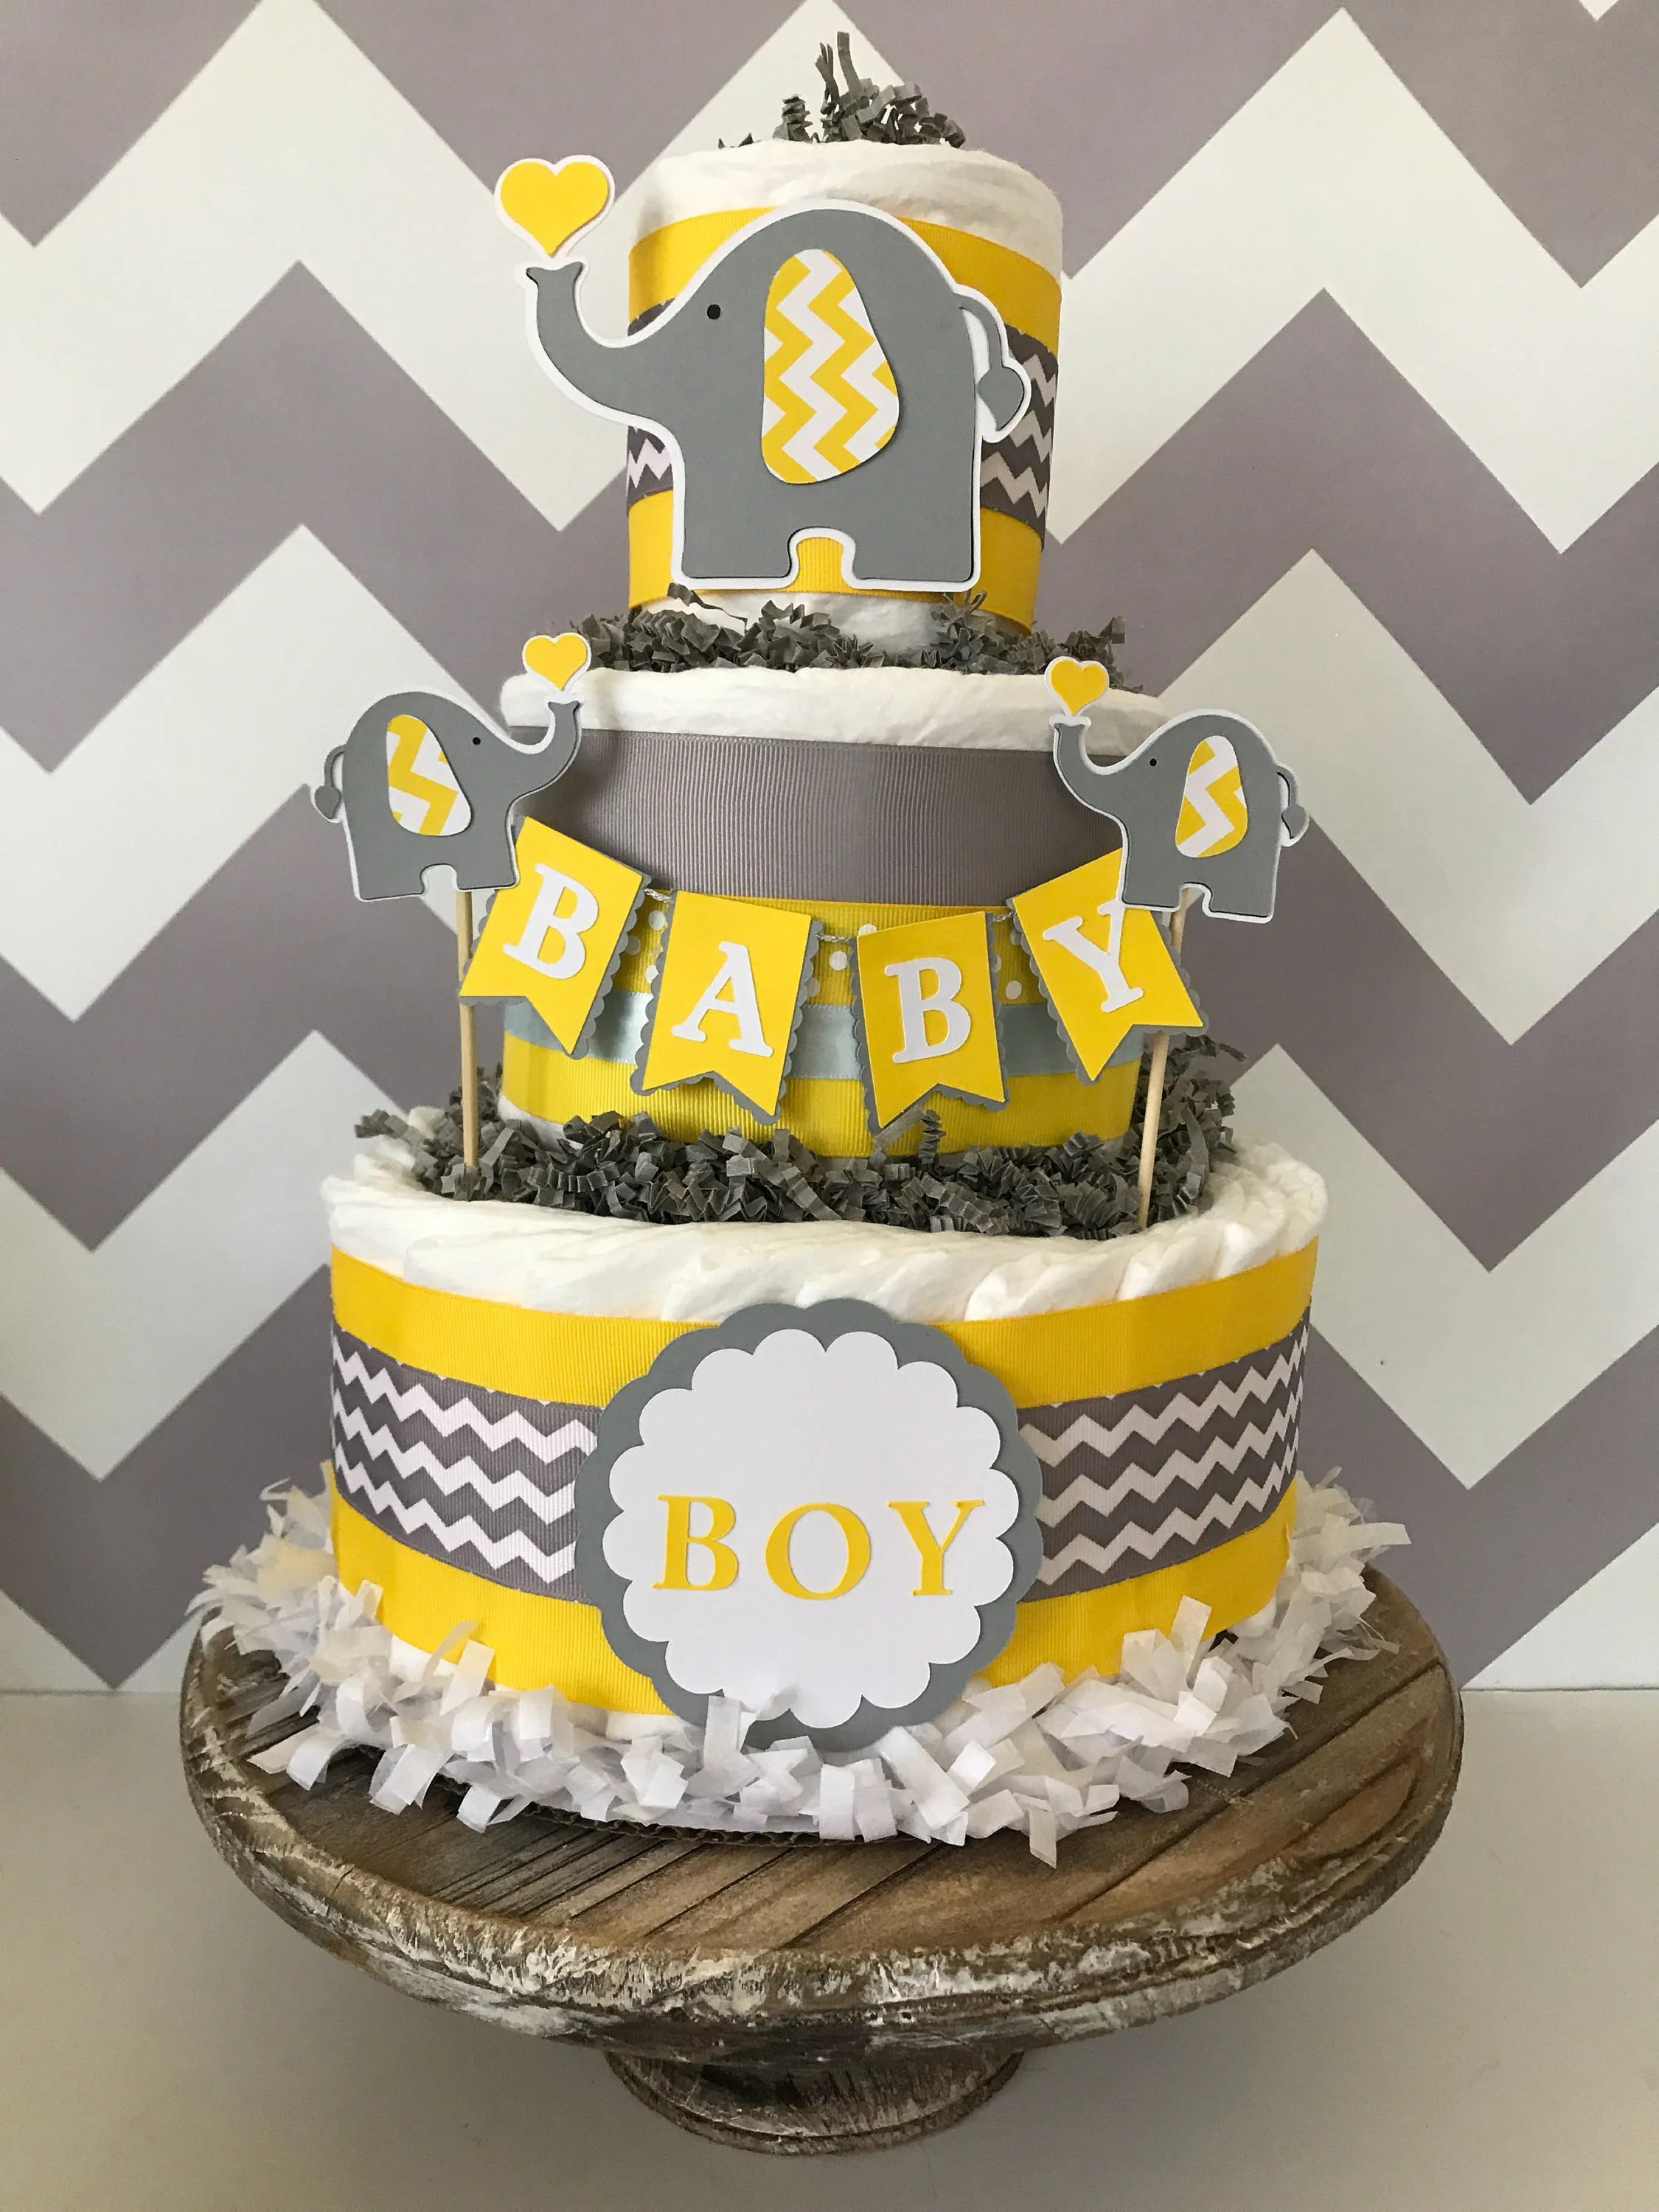 Baby Select Diapers Elephant Diaper Cake In Yellow Gray And White Elephant